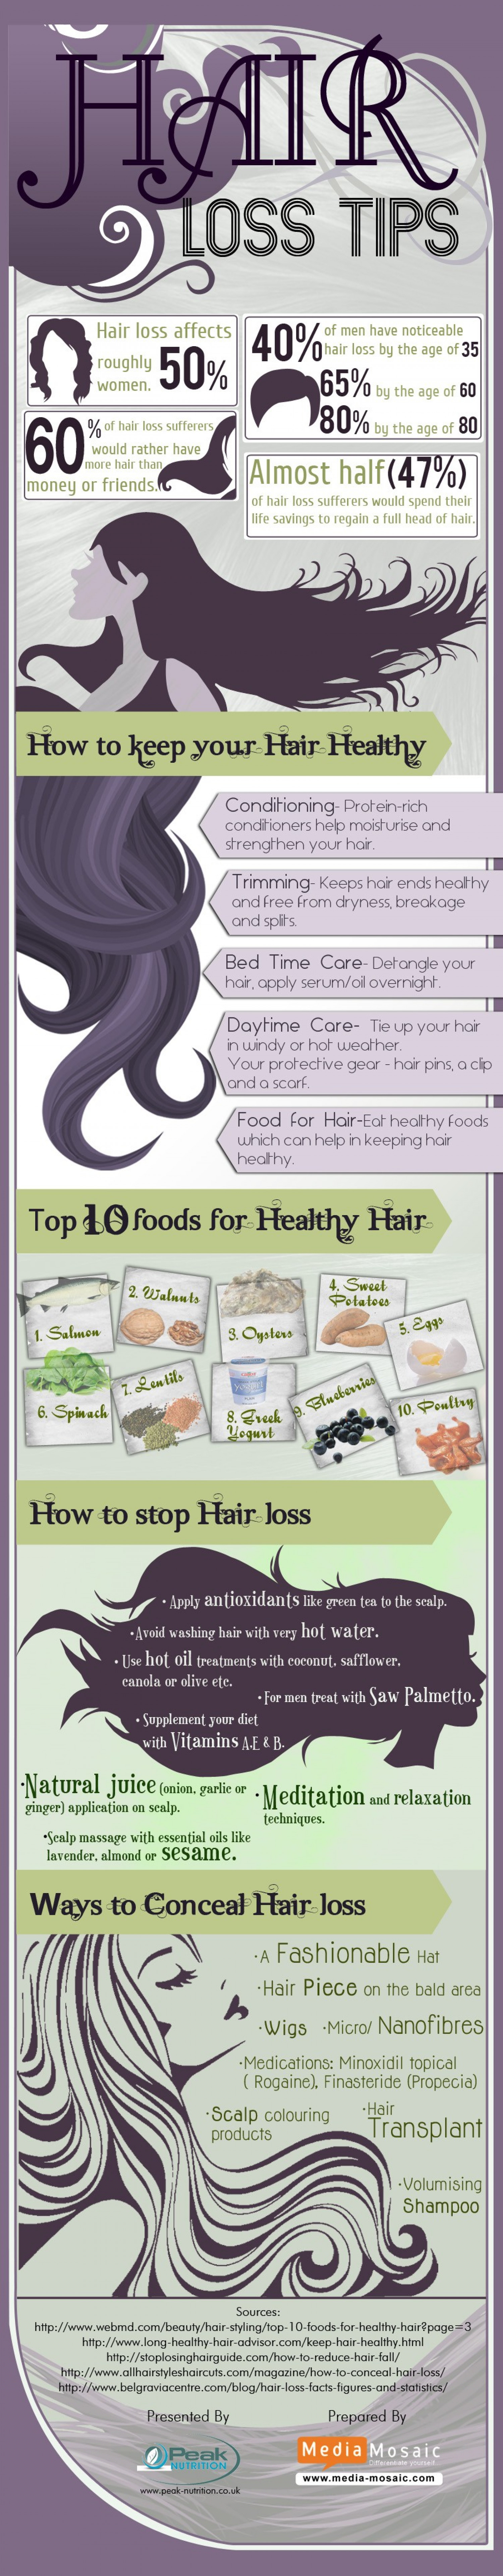 Hair Loss Tips [Infographic] Infographic